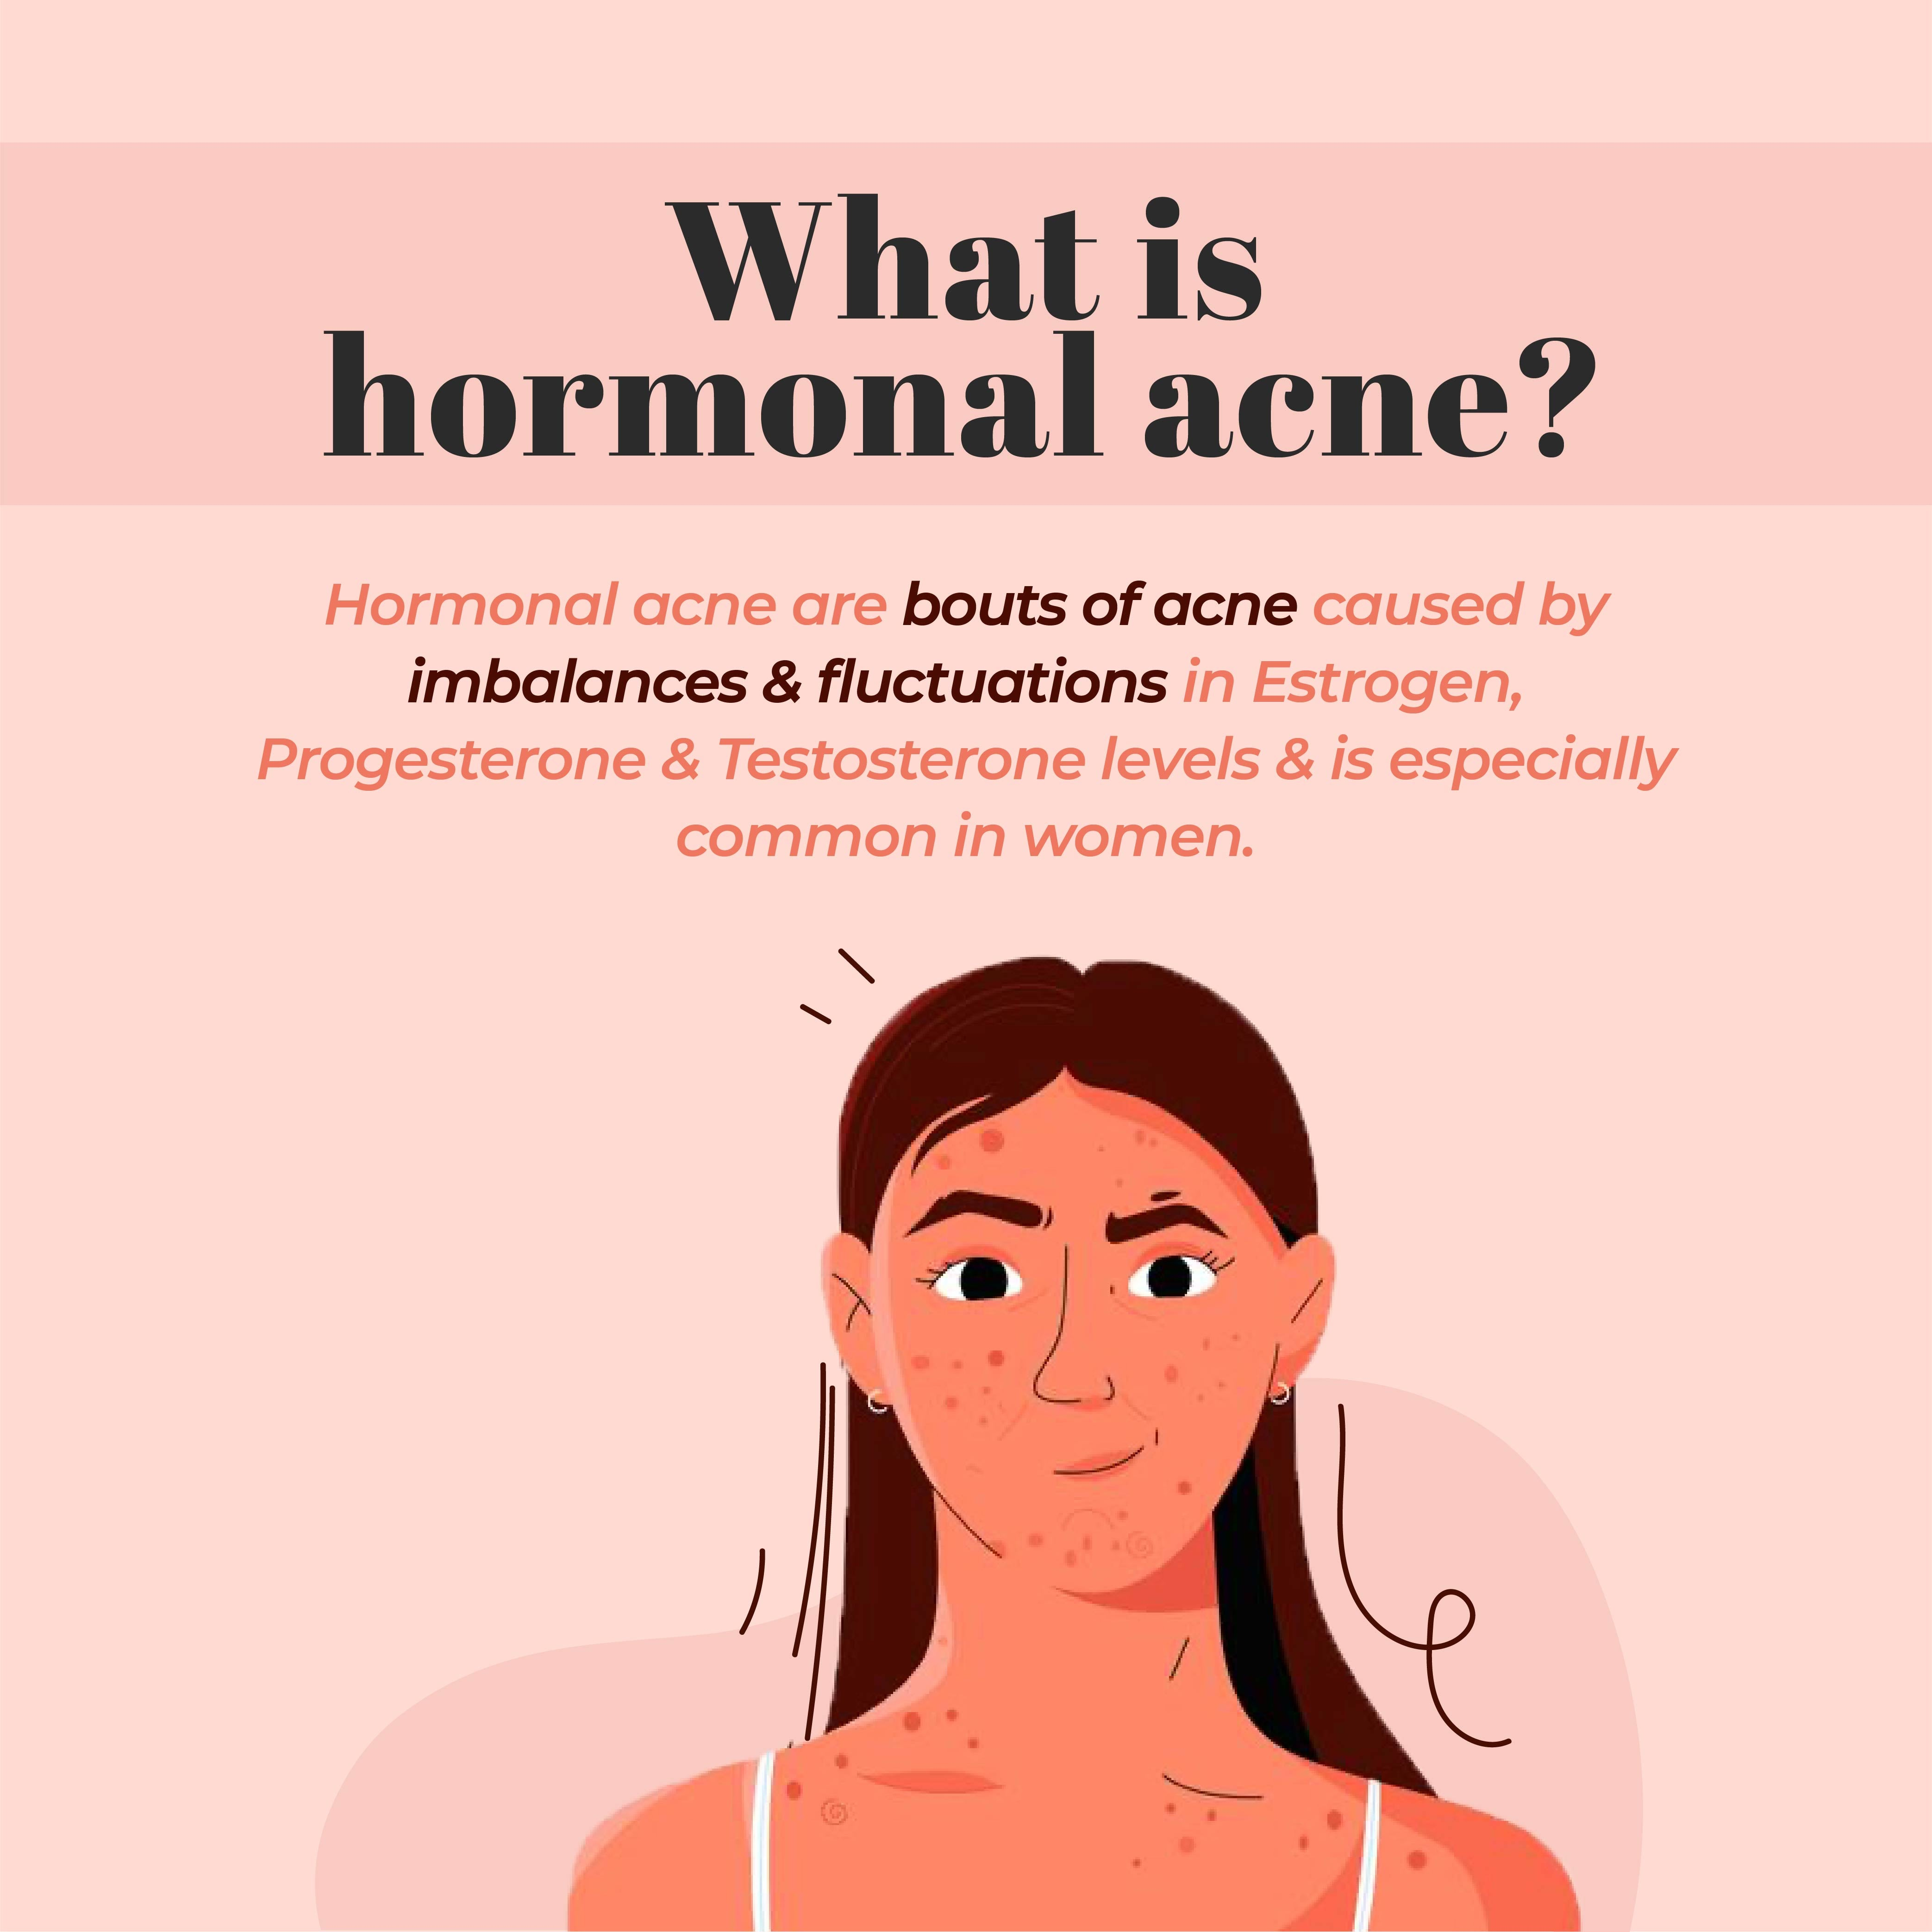 This is an image of what is hormonal acne